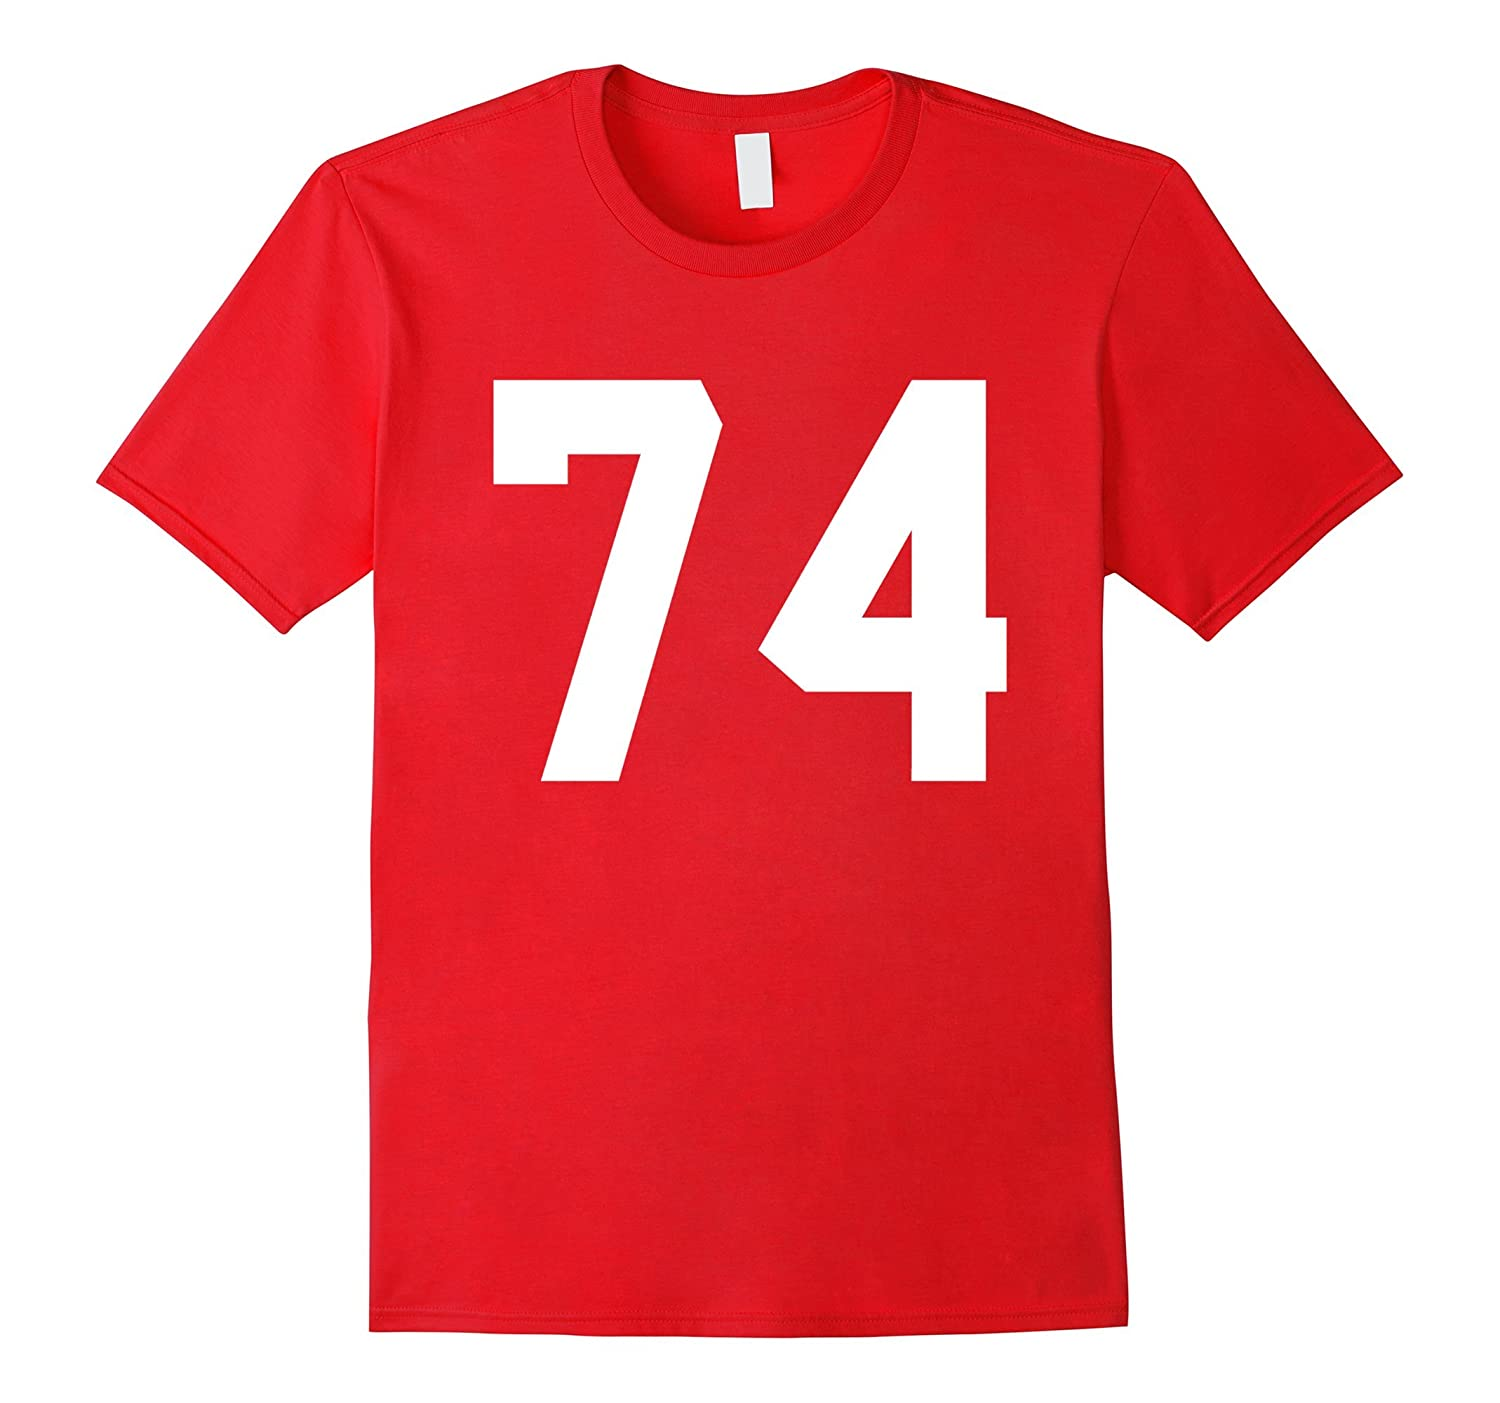 #74 Team Sports Jersey Number Front & Back Player / Fan Tee-CL